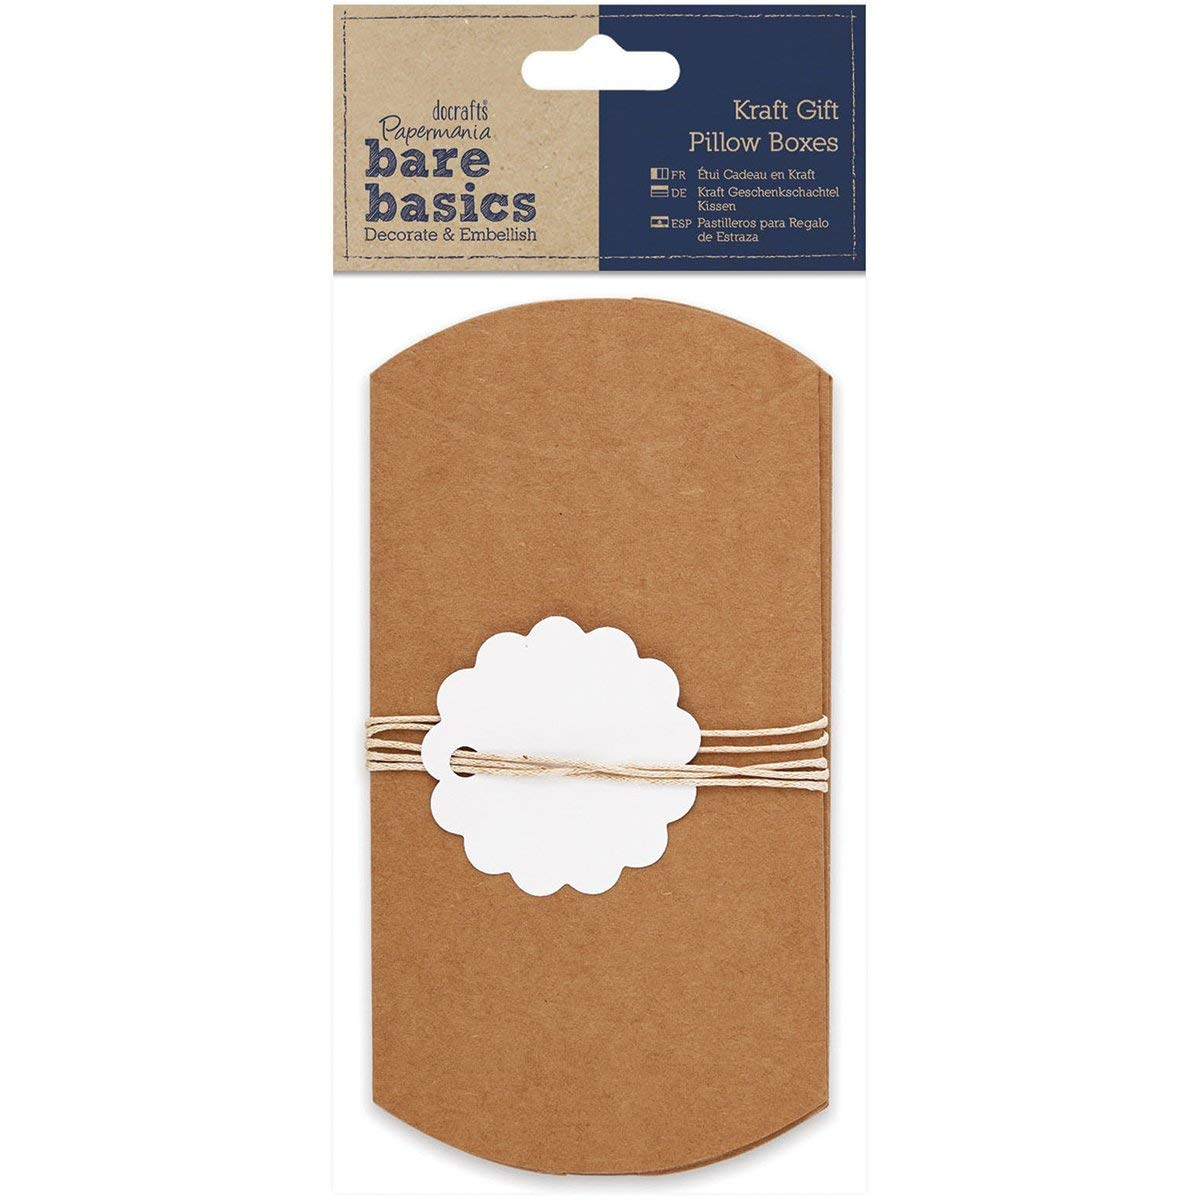 docrafts Papermania Bare Basics Gift Pillow Boxes, Kraft